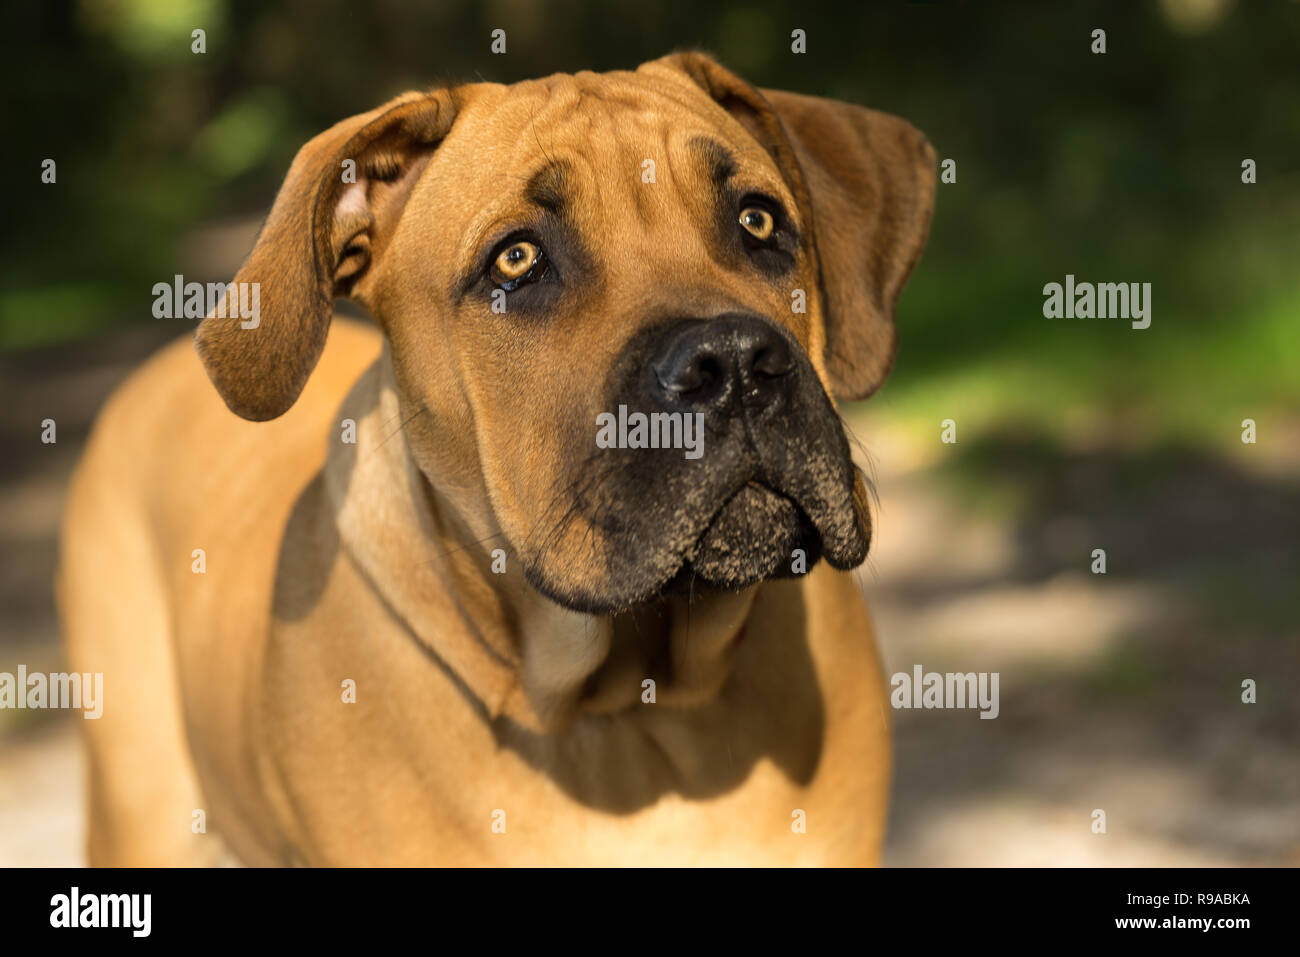 10 months young boerboel or South African Mastiff pup seen from the front close up in a forrest setting Stock Photo